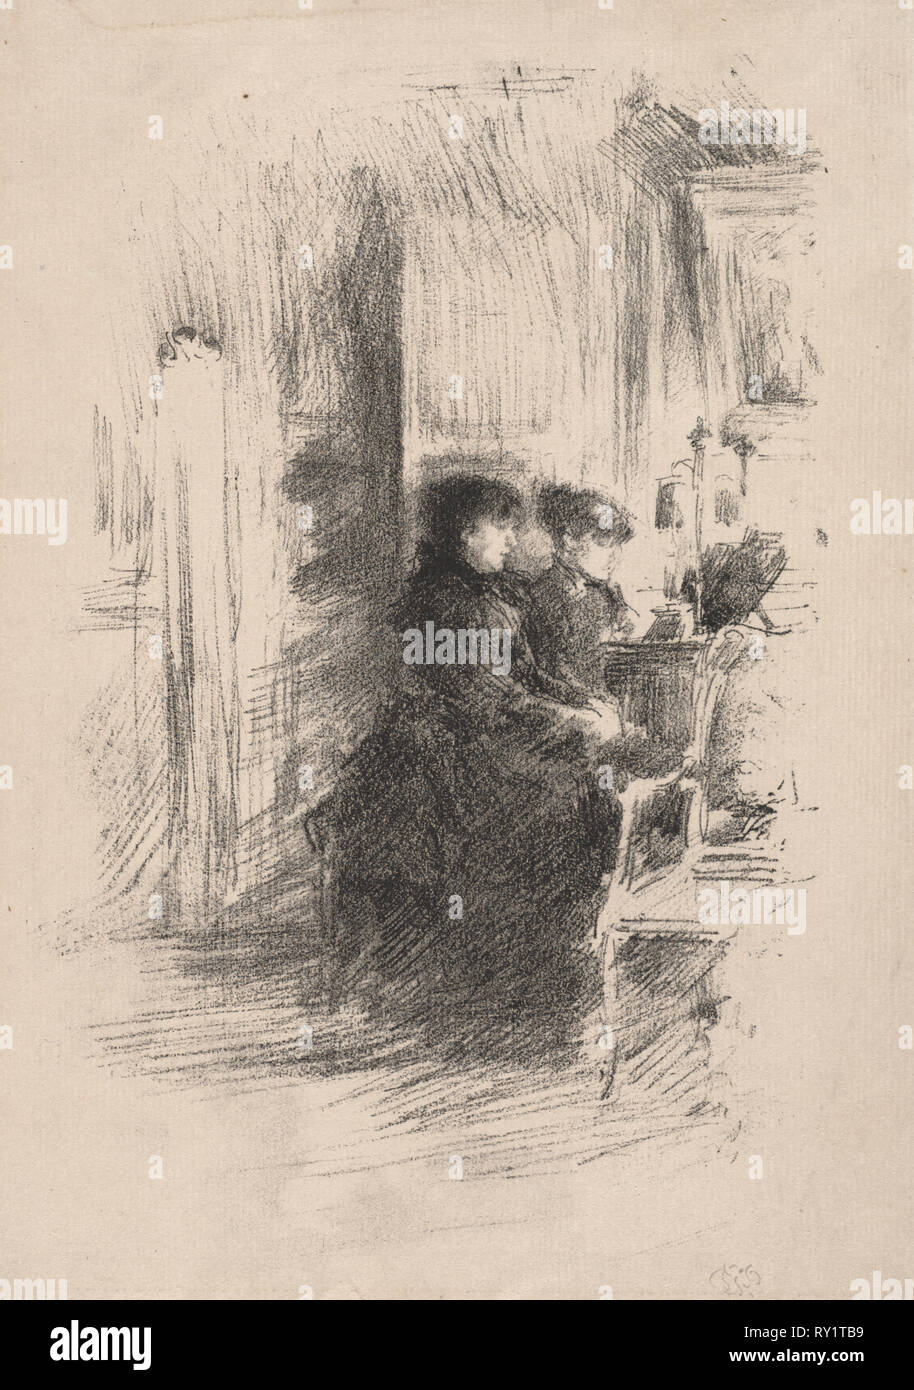 The Duet, 1894. James McNeill Whistler (American, 1834-1903). Lithograph - Stock Image